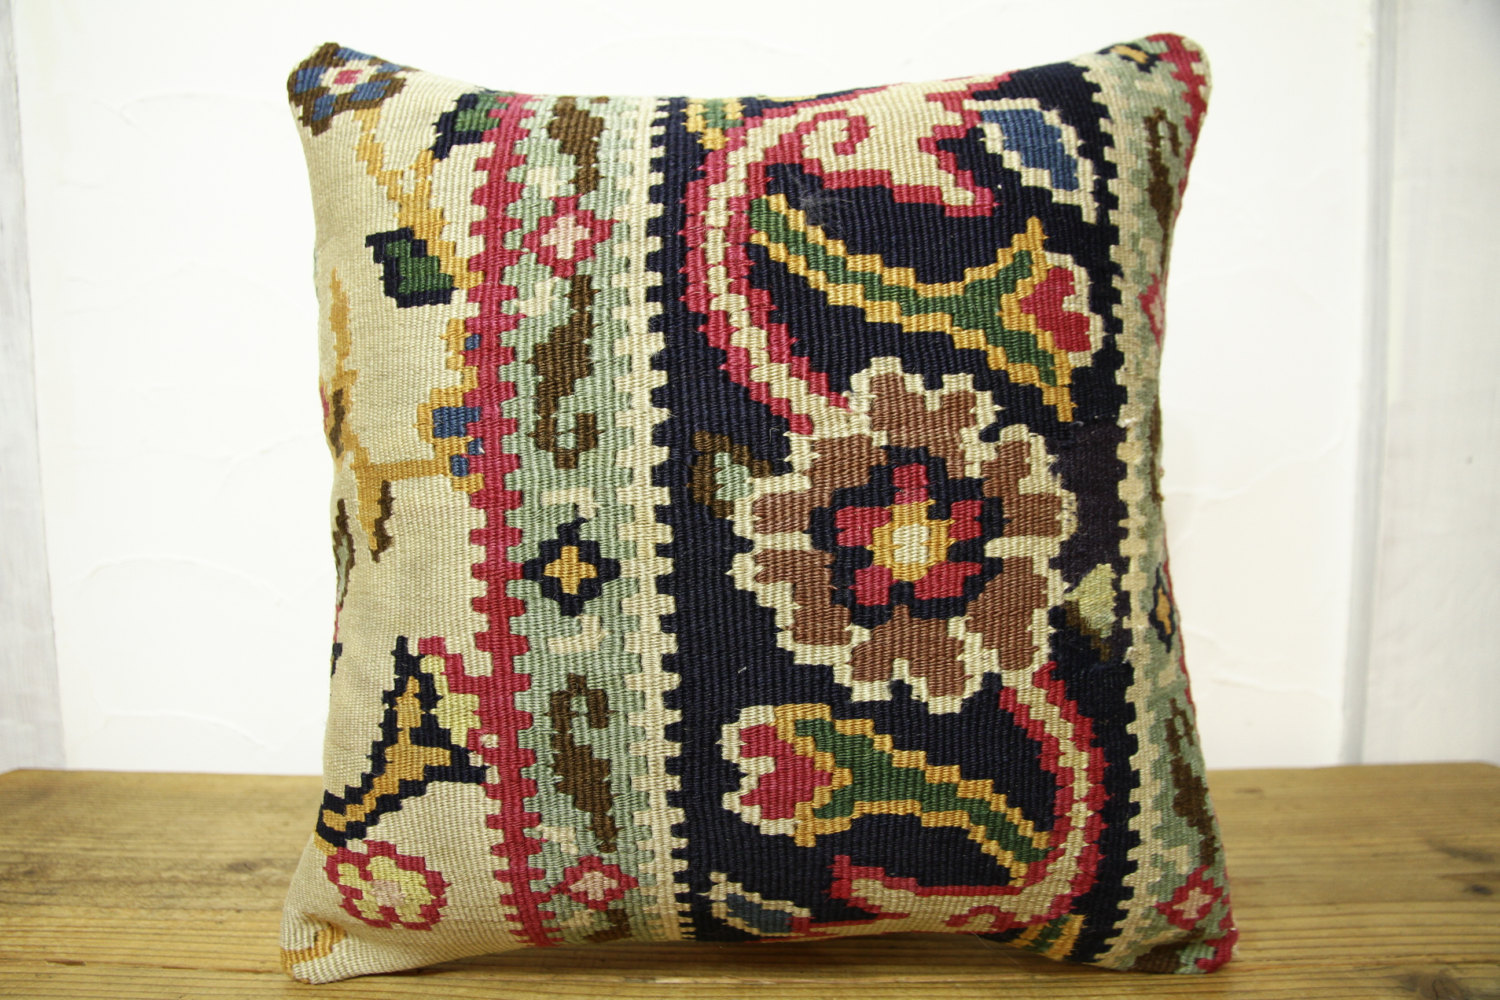 Kilim Pillows |16x16 | Decorative Pillows | 422 | Accent Pillows, Kilim cushion